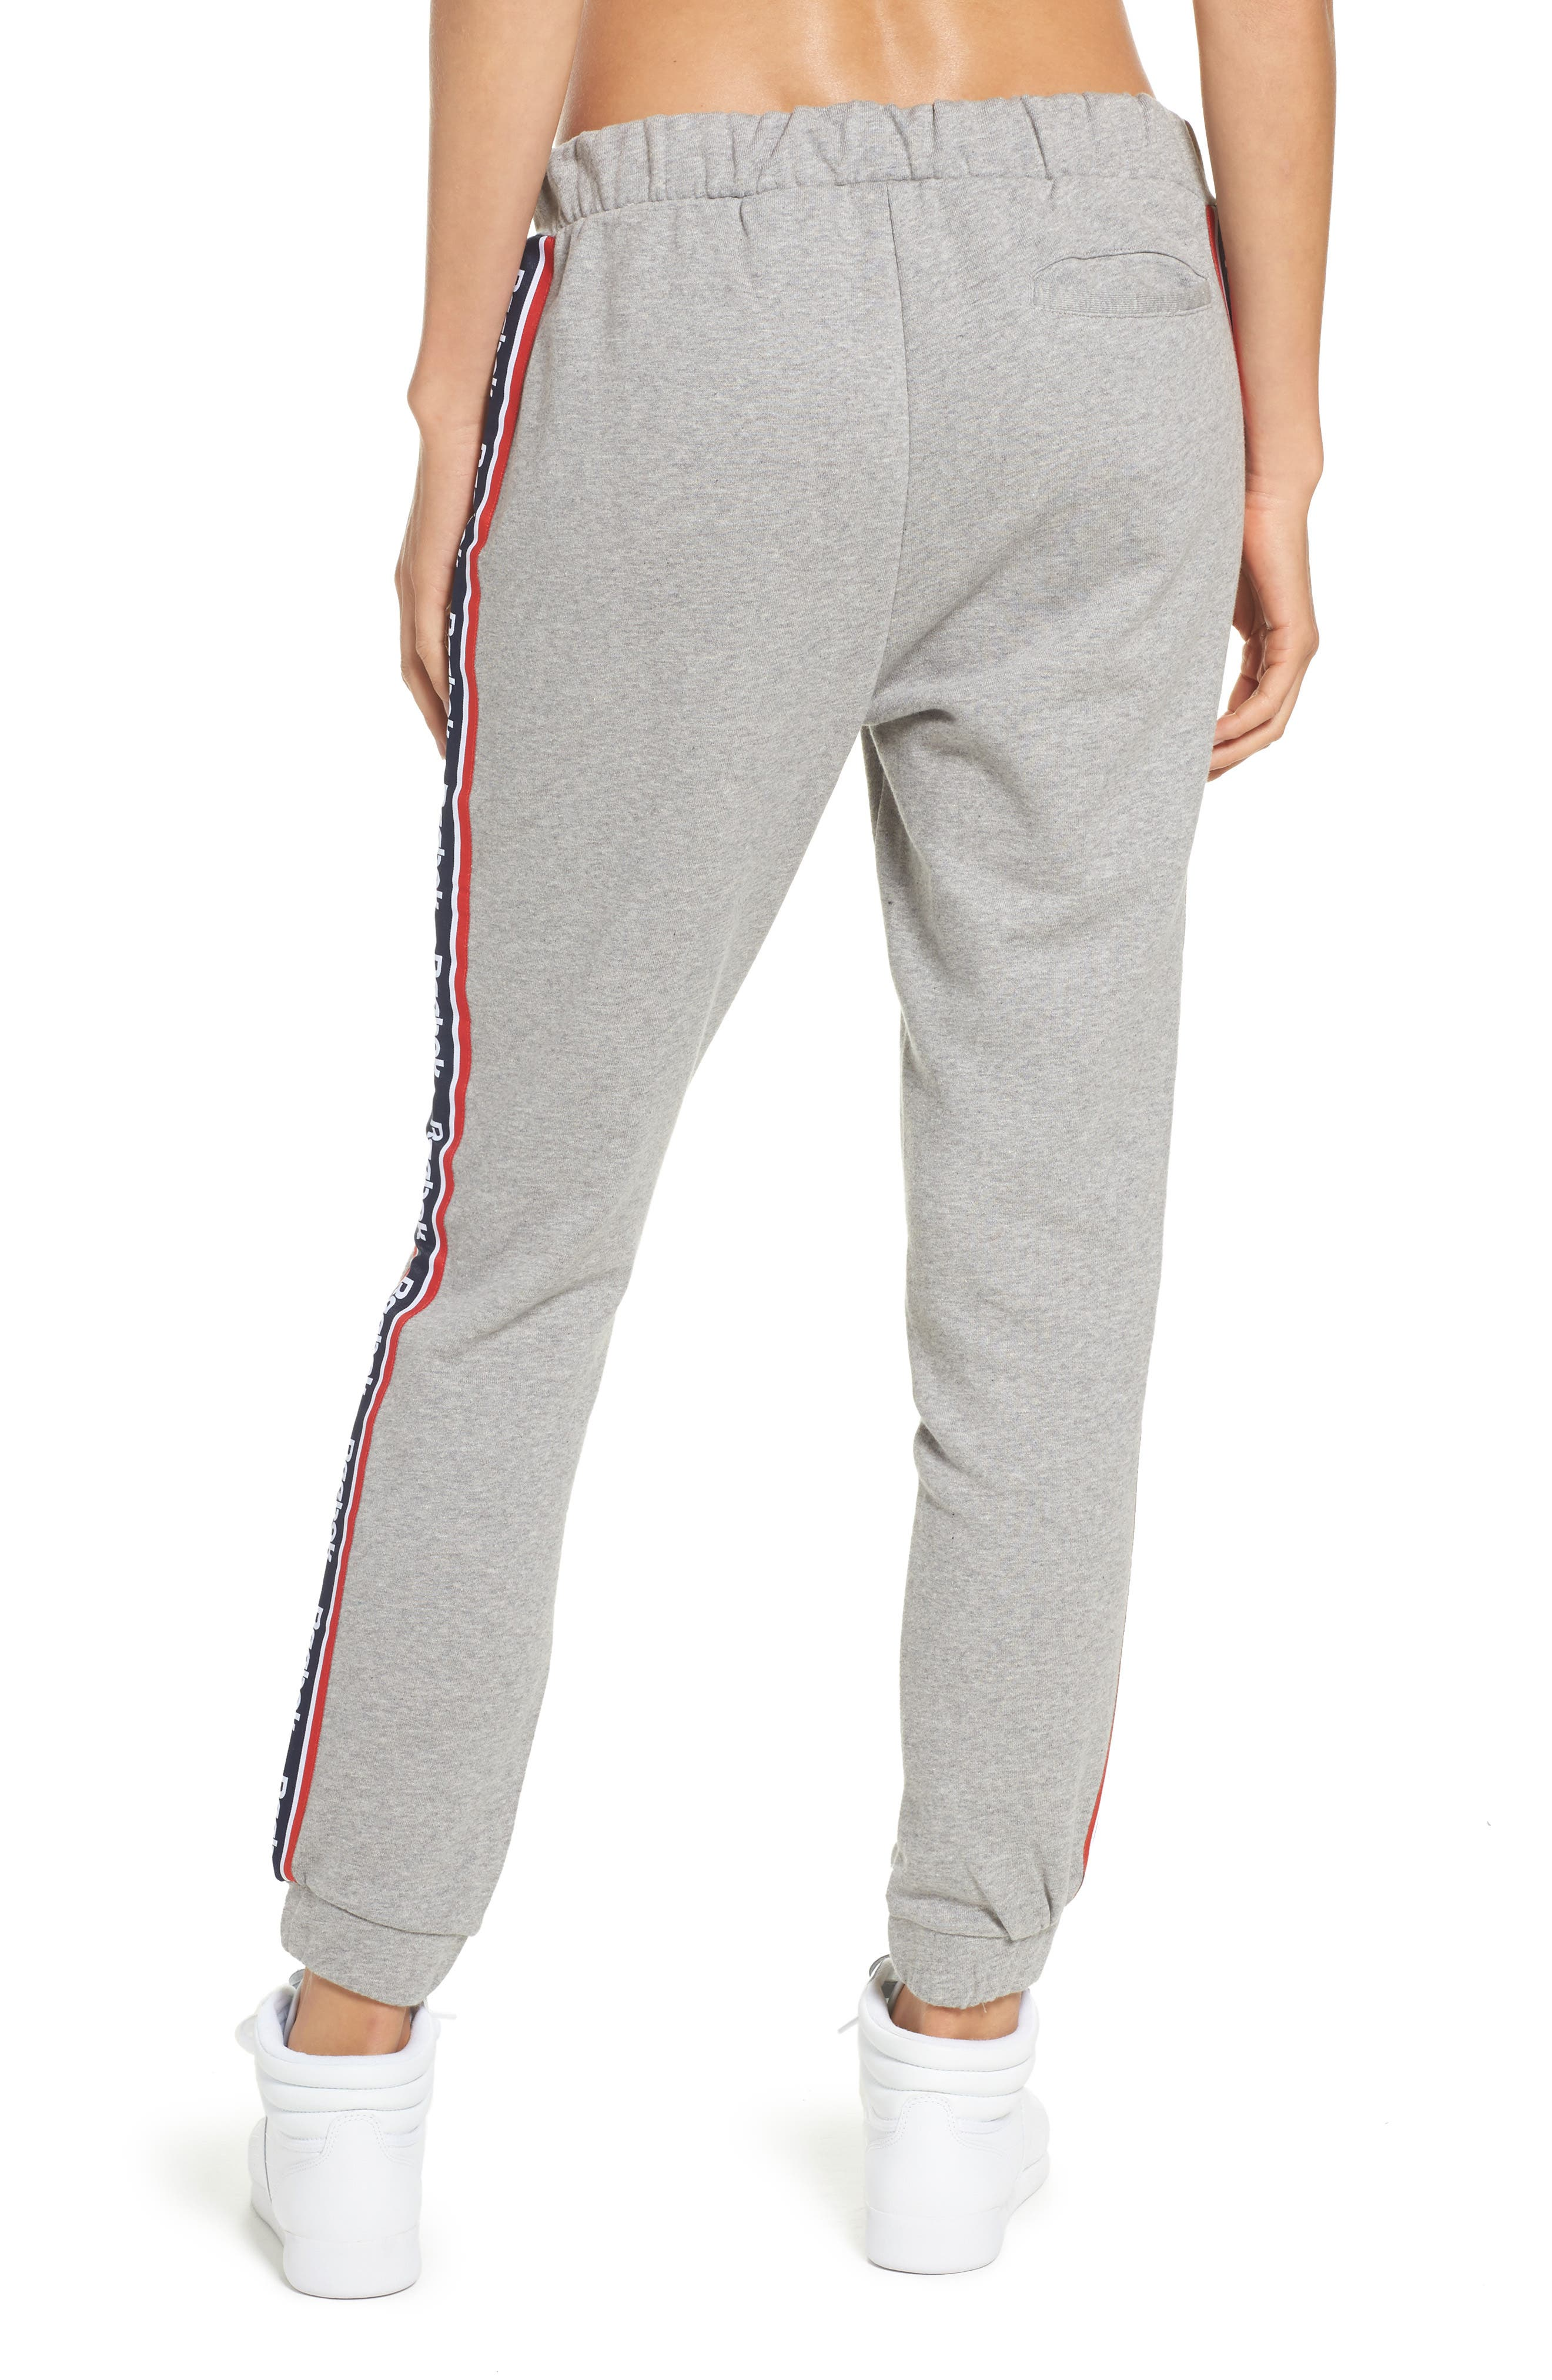 French Terry Pants,                             Alternate thumbnail 3, color,